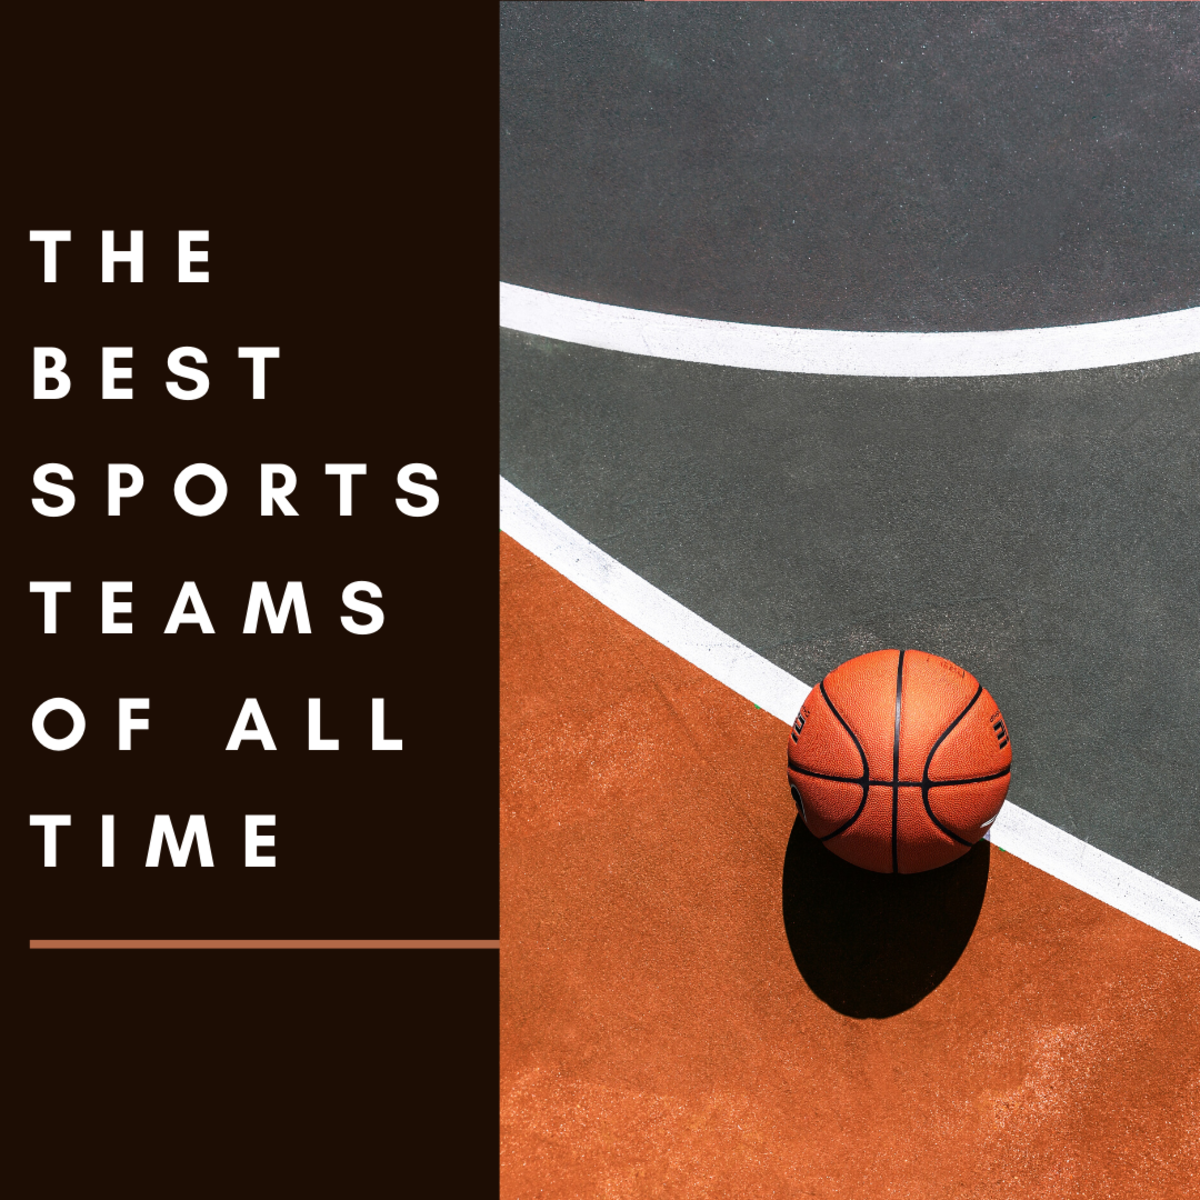 The Best Sports Teams of All Time